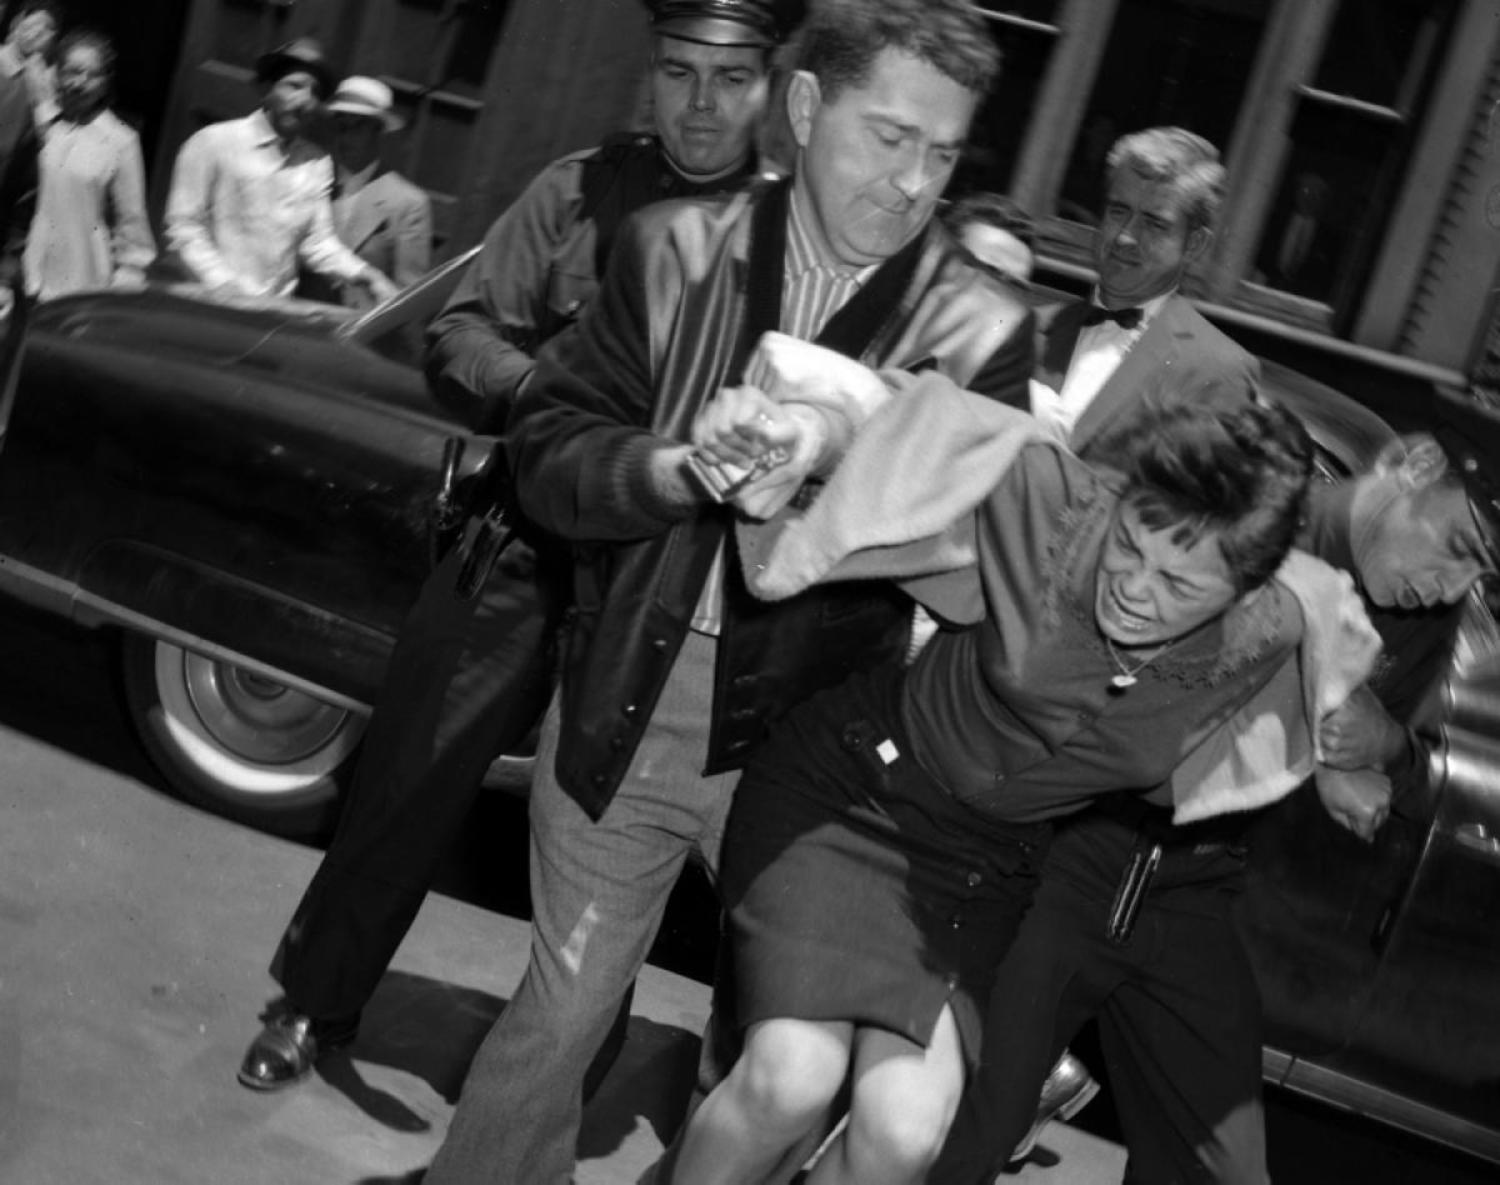 Mob Moll, 1959: They start them young! While most people consider the mob to be made up of a bunch of men, that acutally isn't the case. Here, 15-year-old moll Carmen Martinez doesn't go down without a fight as she is hauled off by police to Felony Court for the murder of 17-year-old Raul Banuchi.